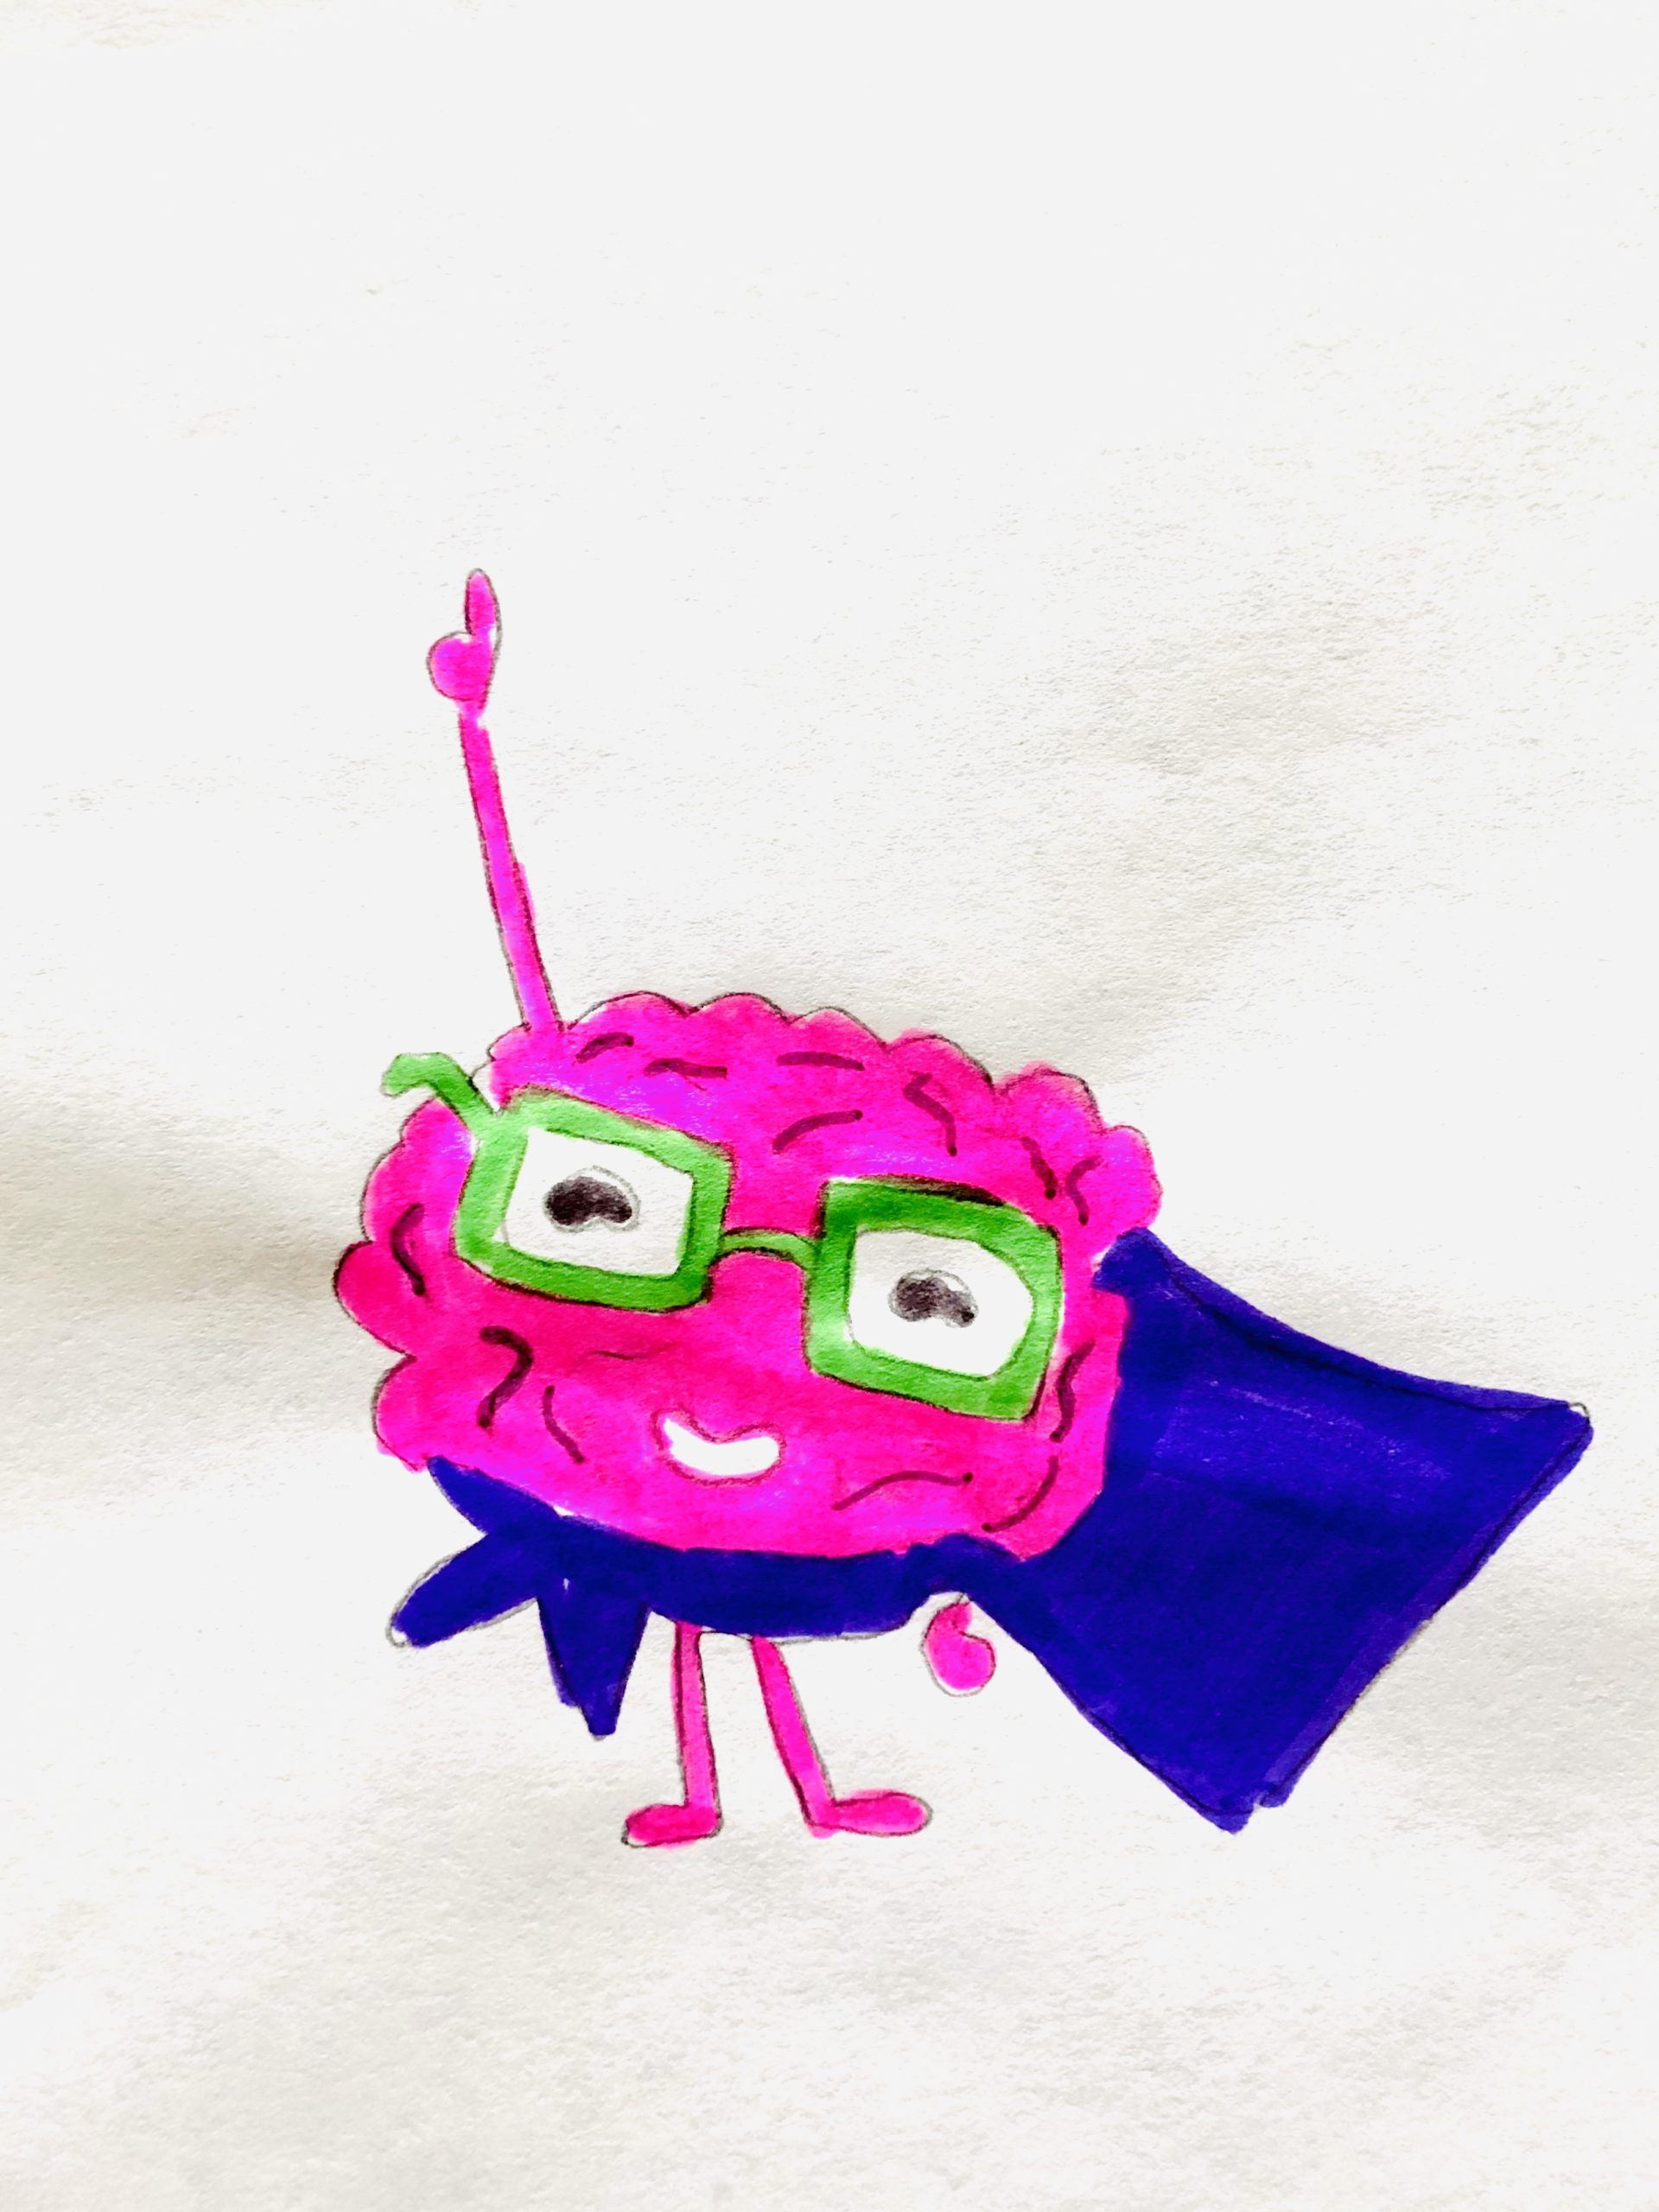 Drawing of a pink brain with glasses and a blue cape in this story for kids.